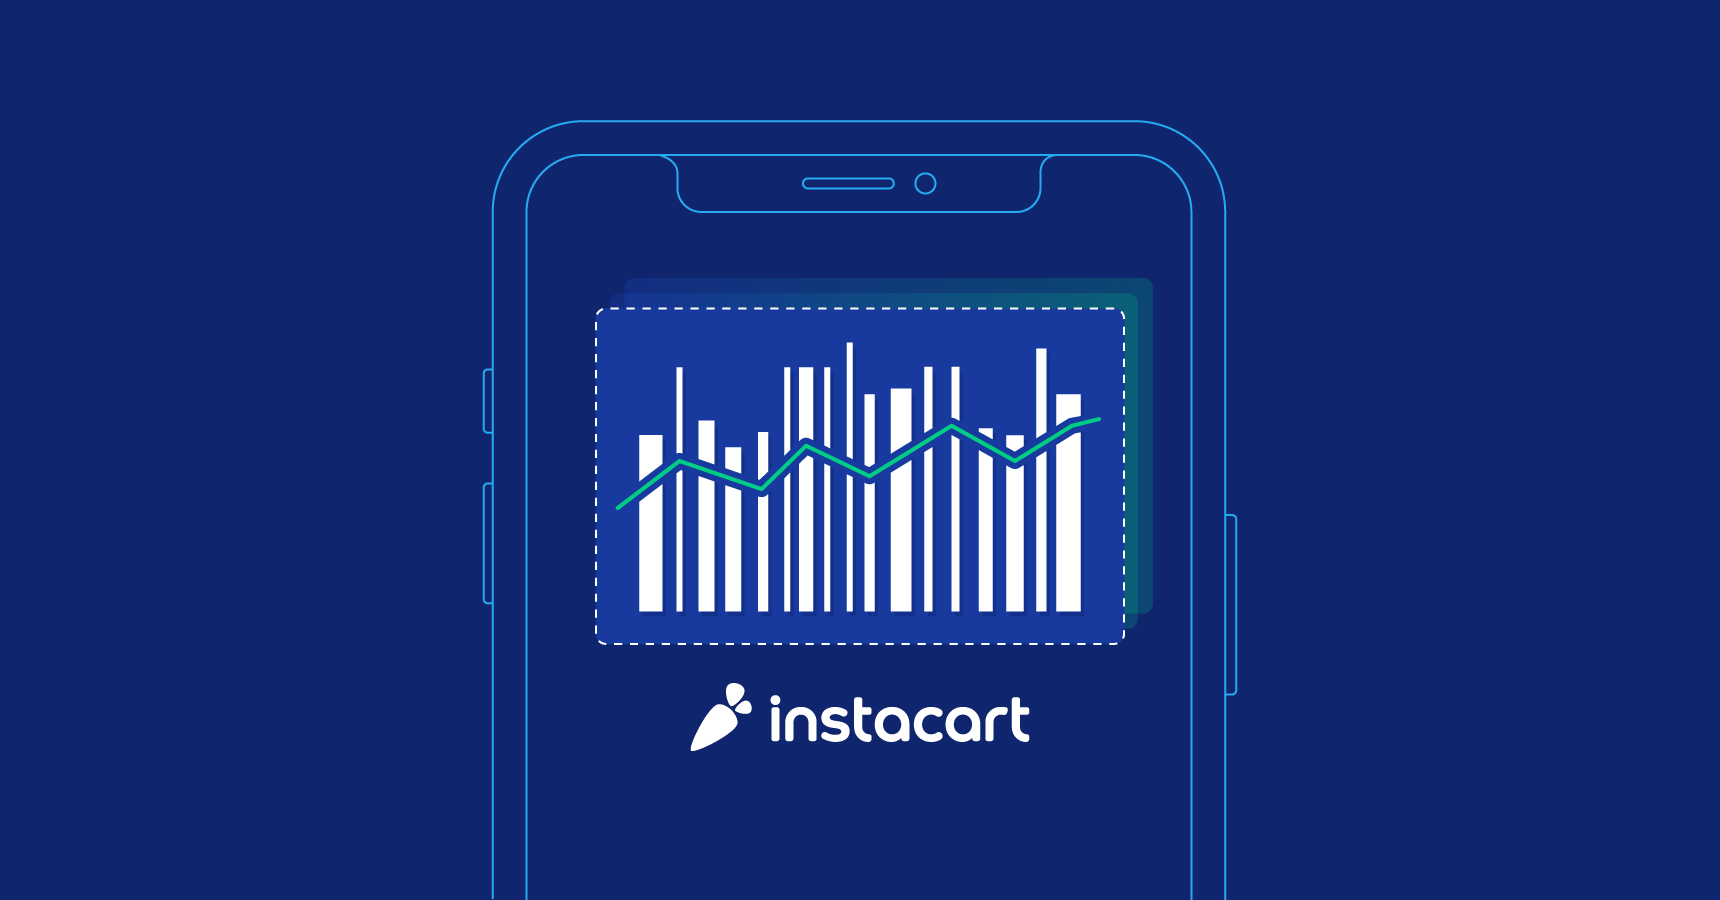 Is the Instacart Valuation of $4 2 Billion Justified? | Toptal